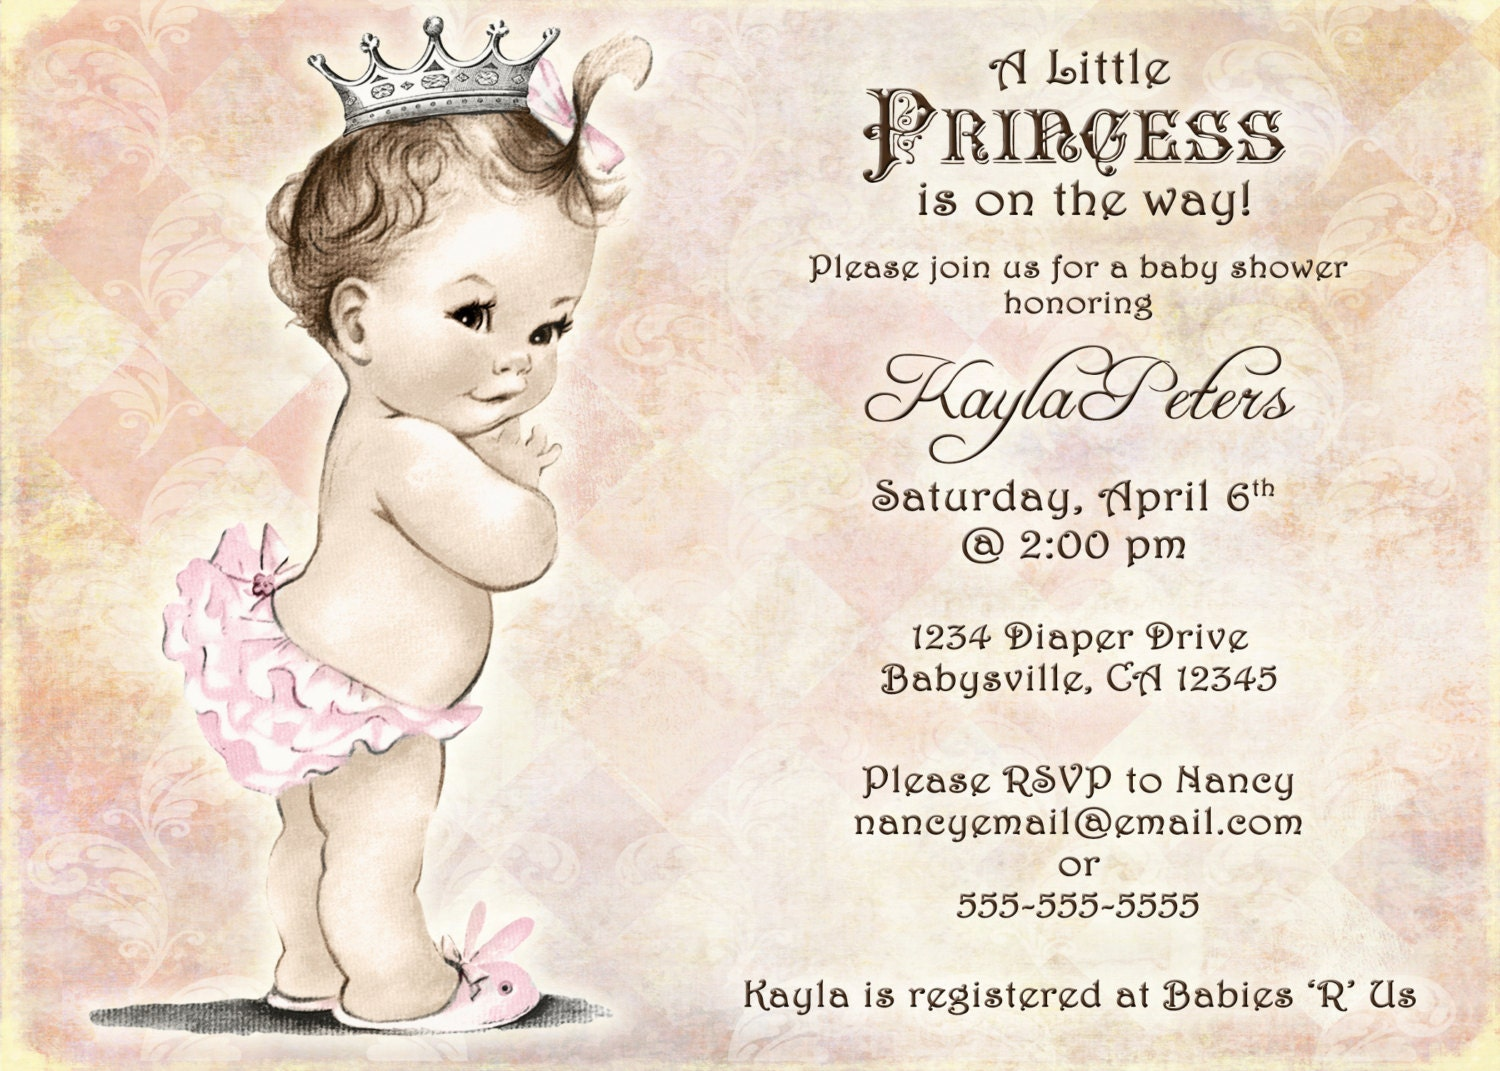 vintage baby shower invitation for girl princess crown, Baby shower invitations